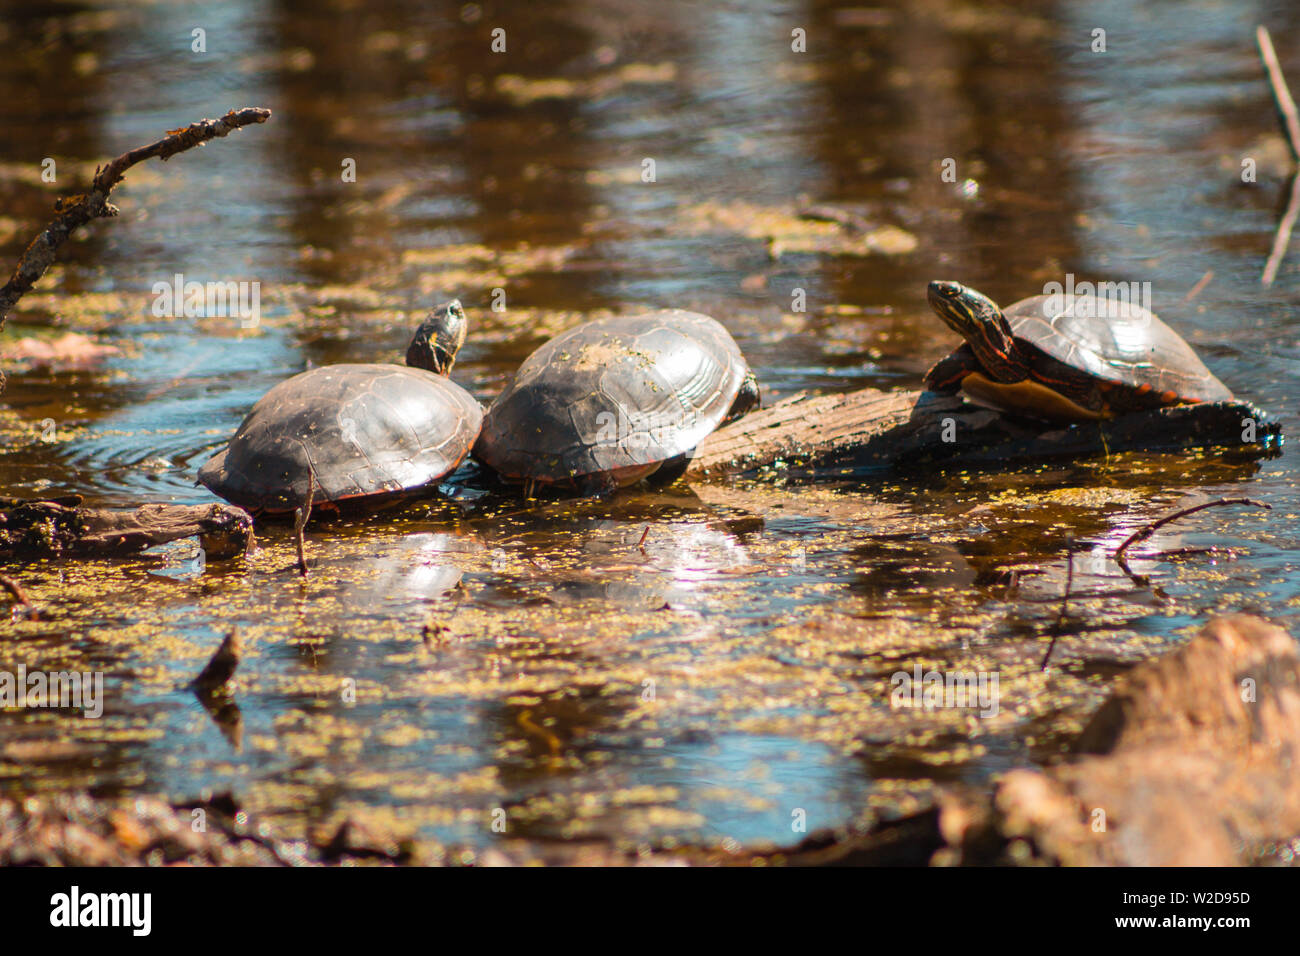 Three turtles warming themselves on a sunny day in a pond - Stock Image